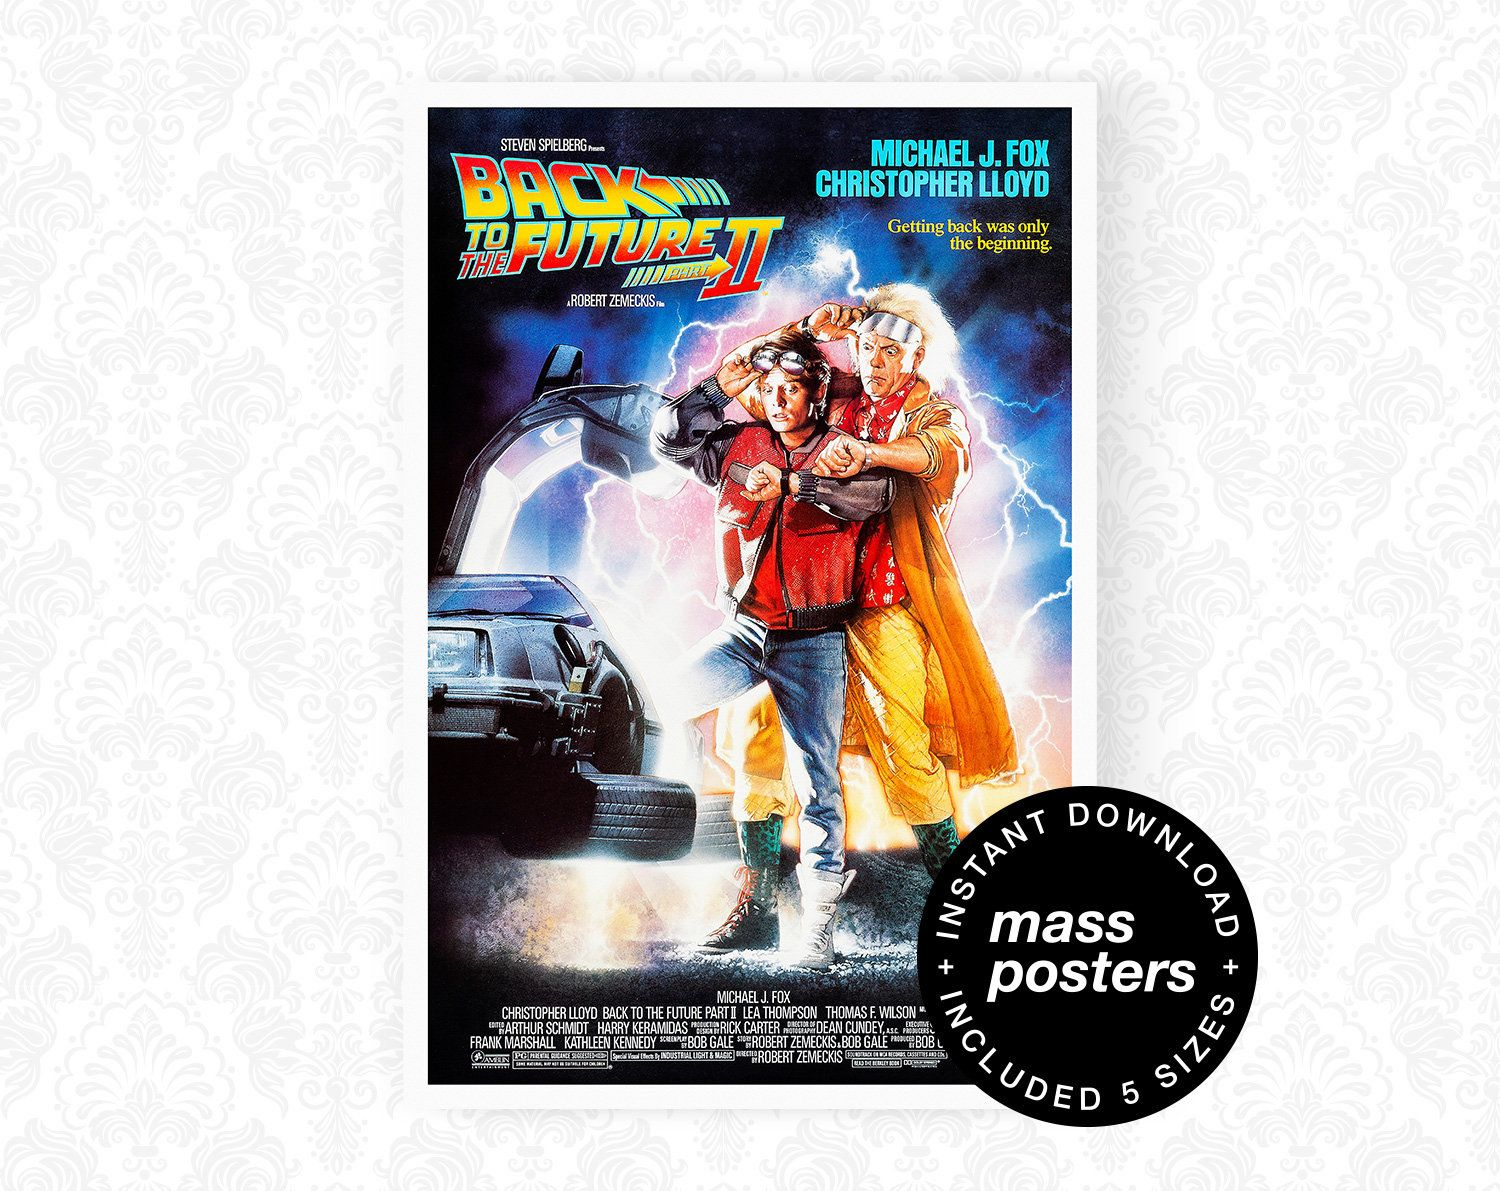 BACK TO THE FUTURE PART II Movie PHOTO Print POSTER FIlm 1989 Robert Zemeckis 1